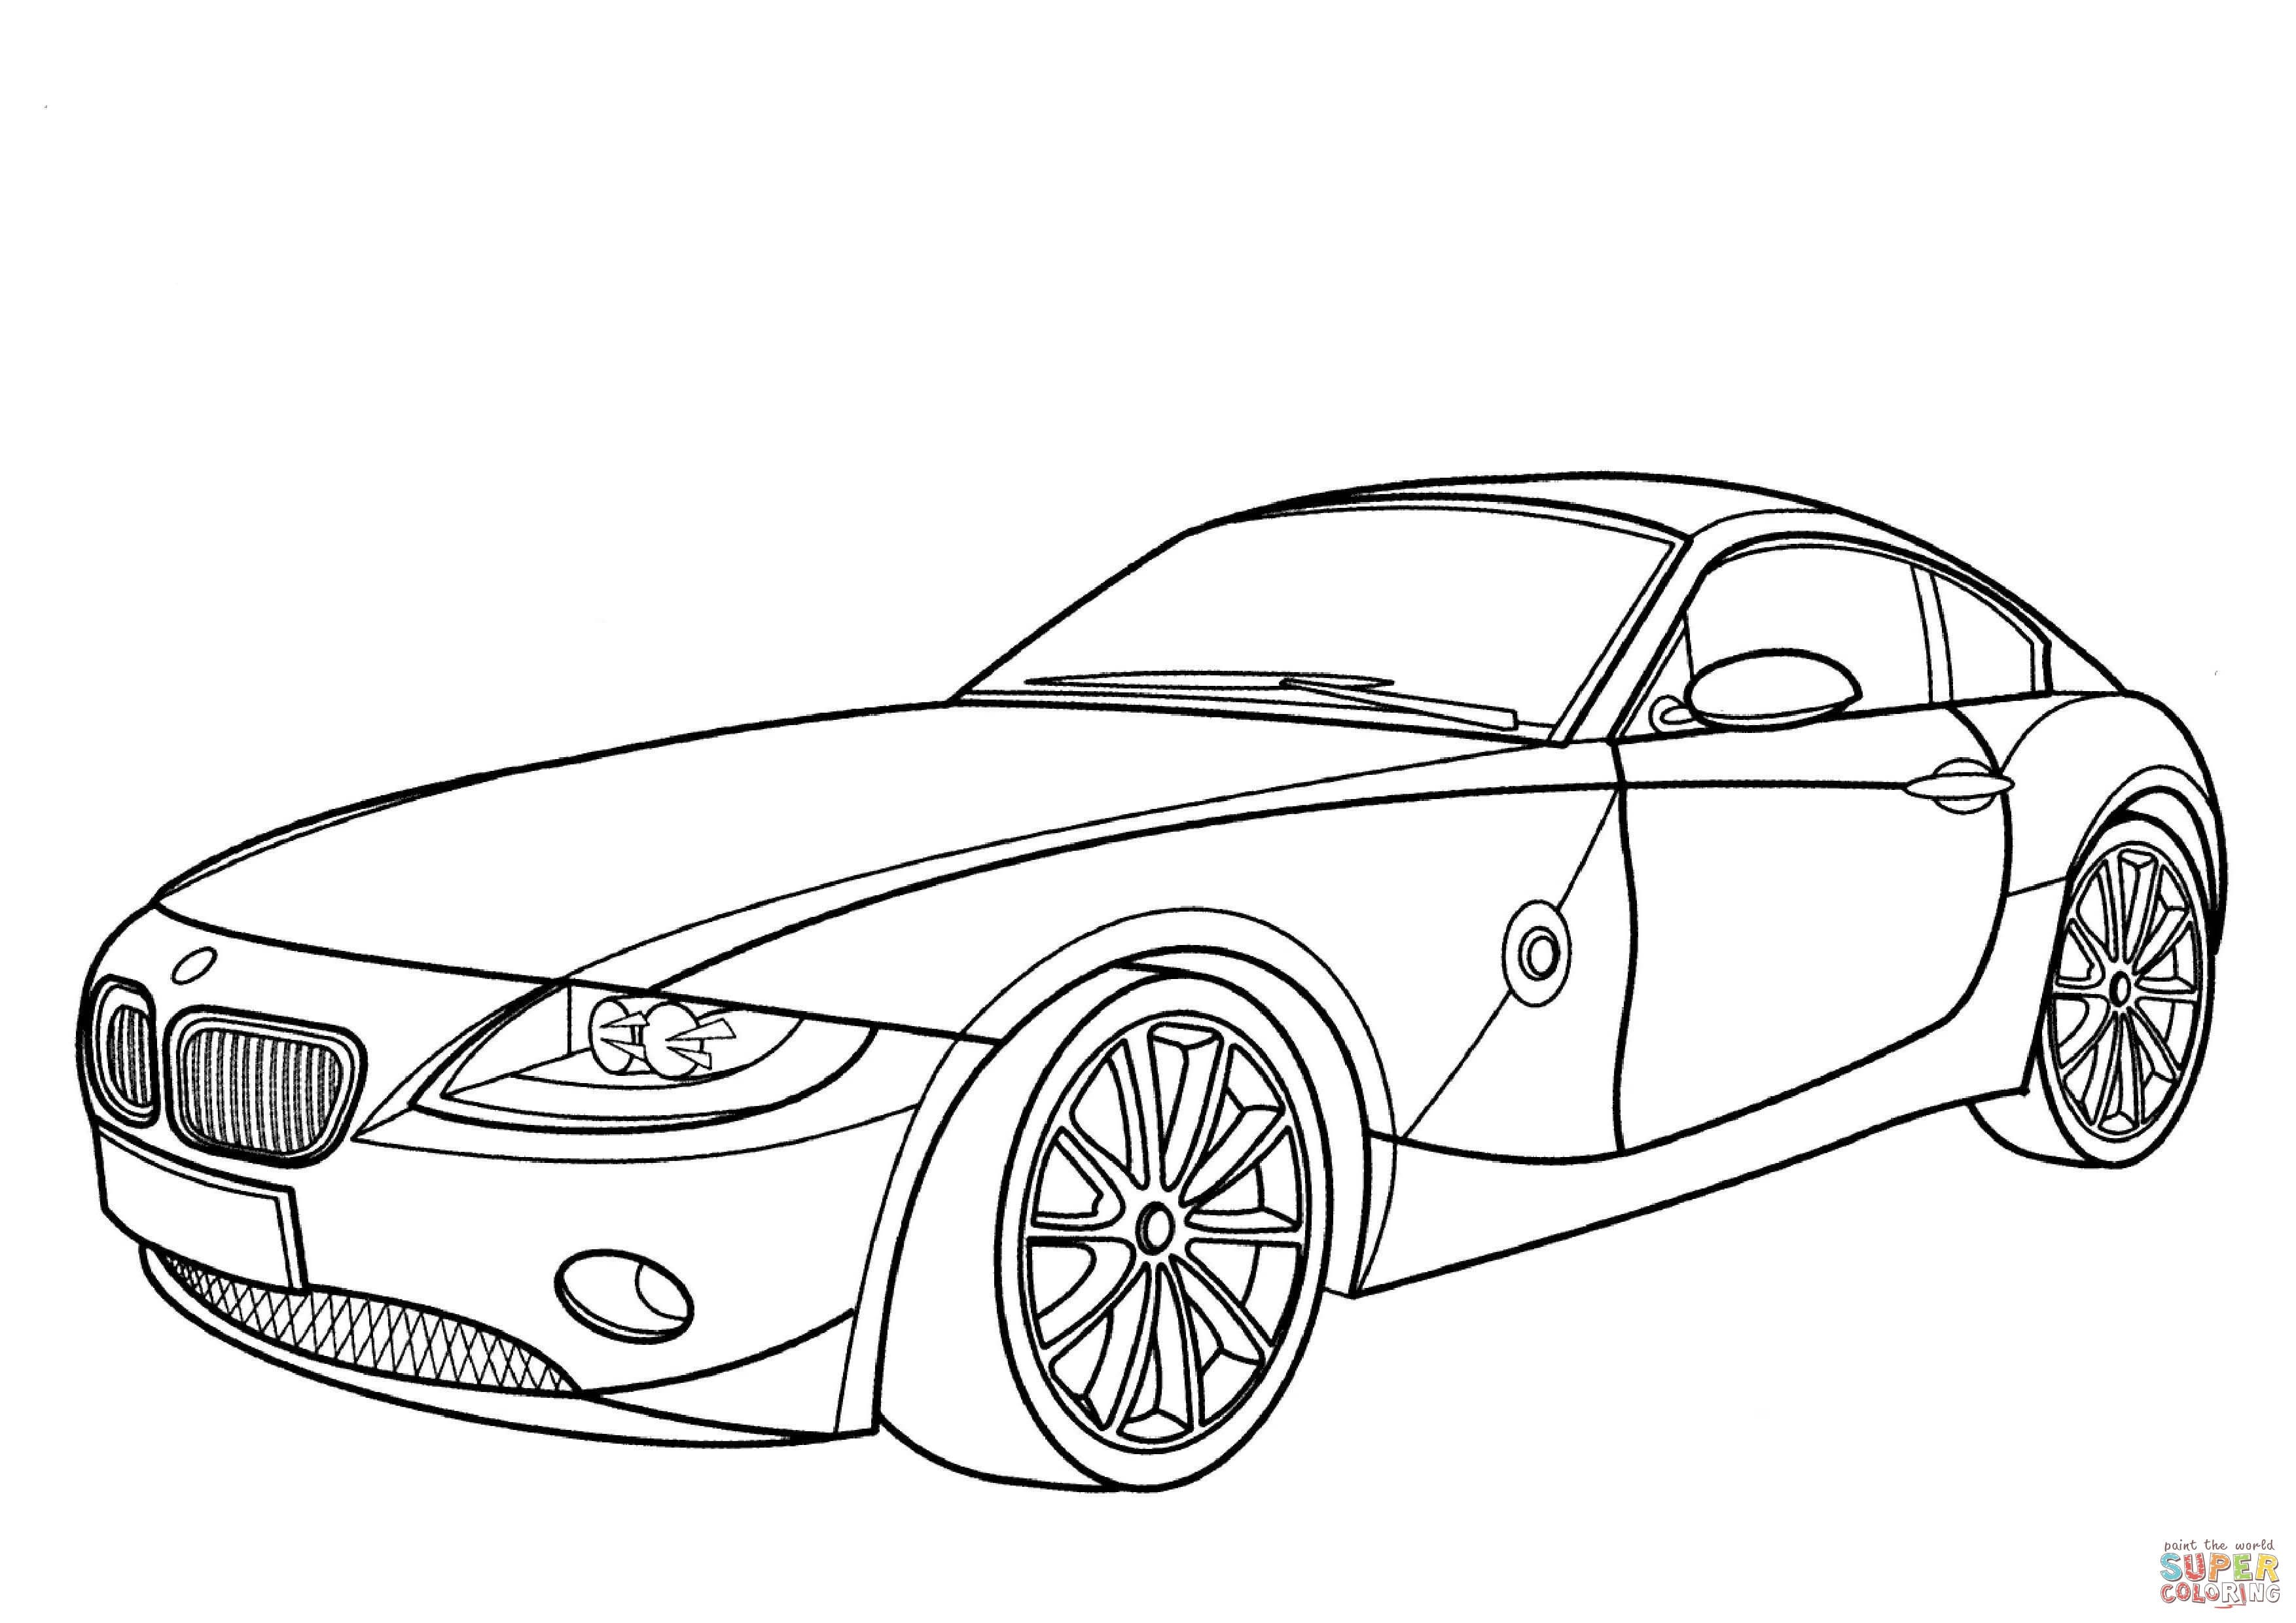 3508x2480 Super Car Bmw Z3 Coloring Page For Kids Awesome Bmw 6 Series